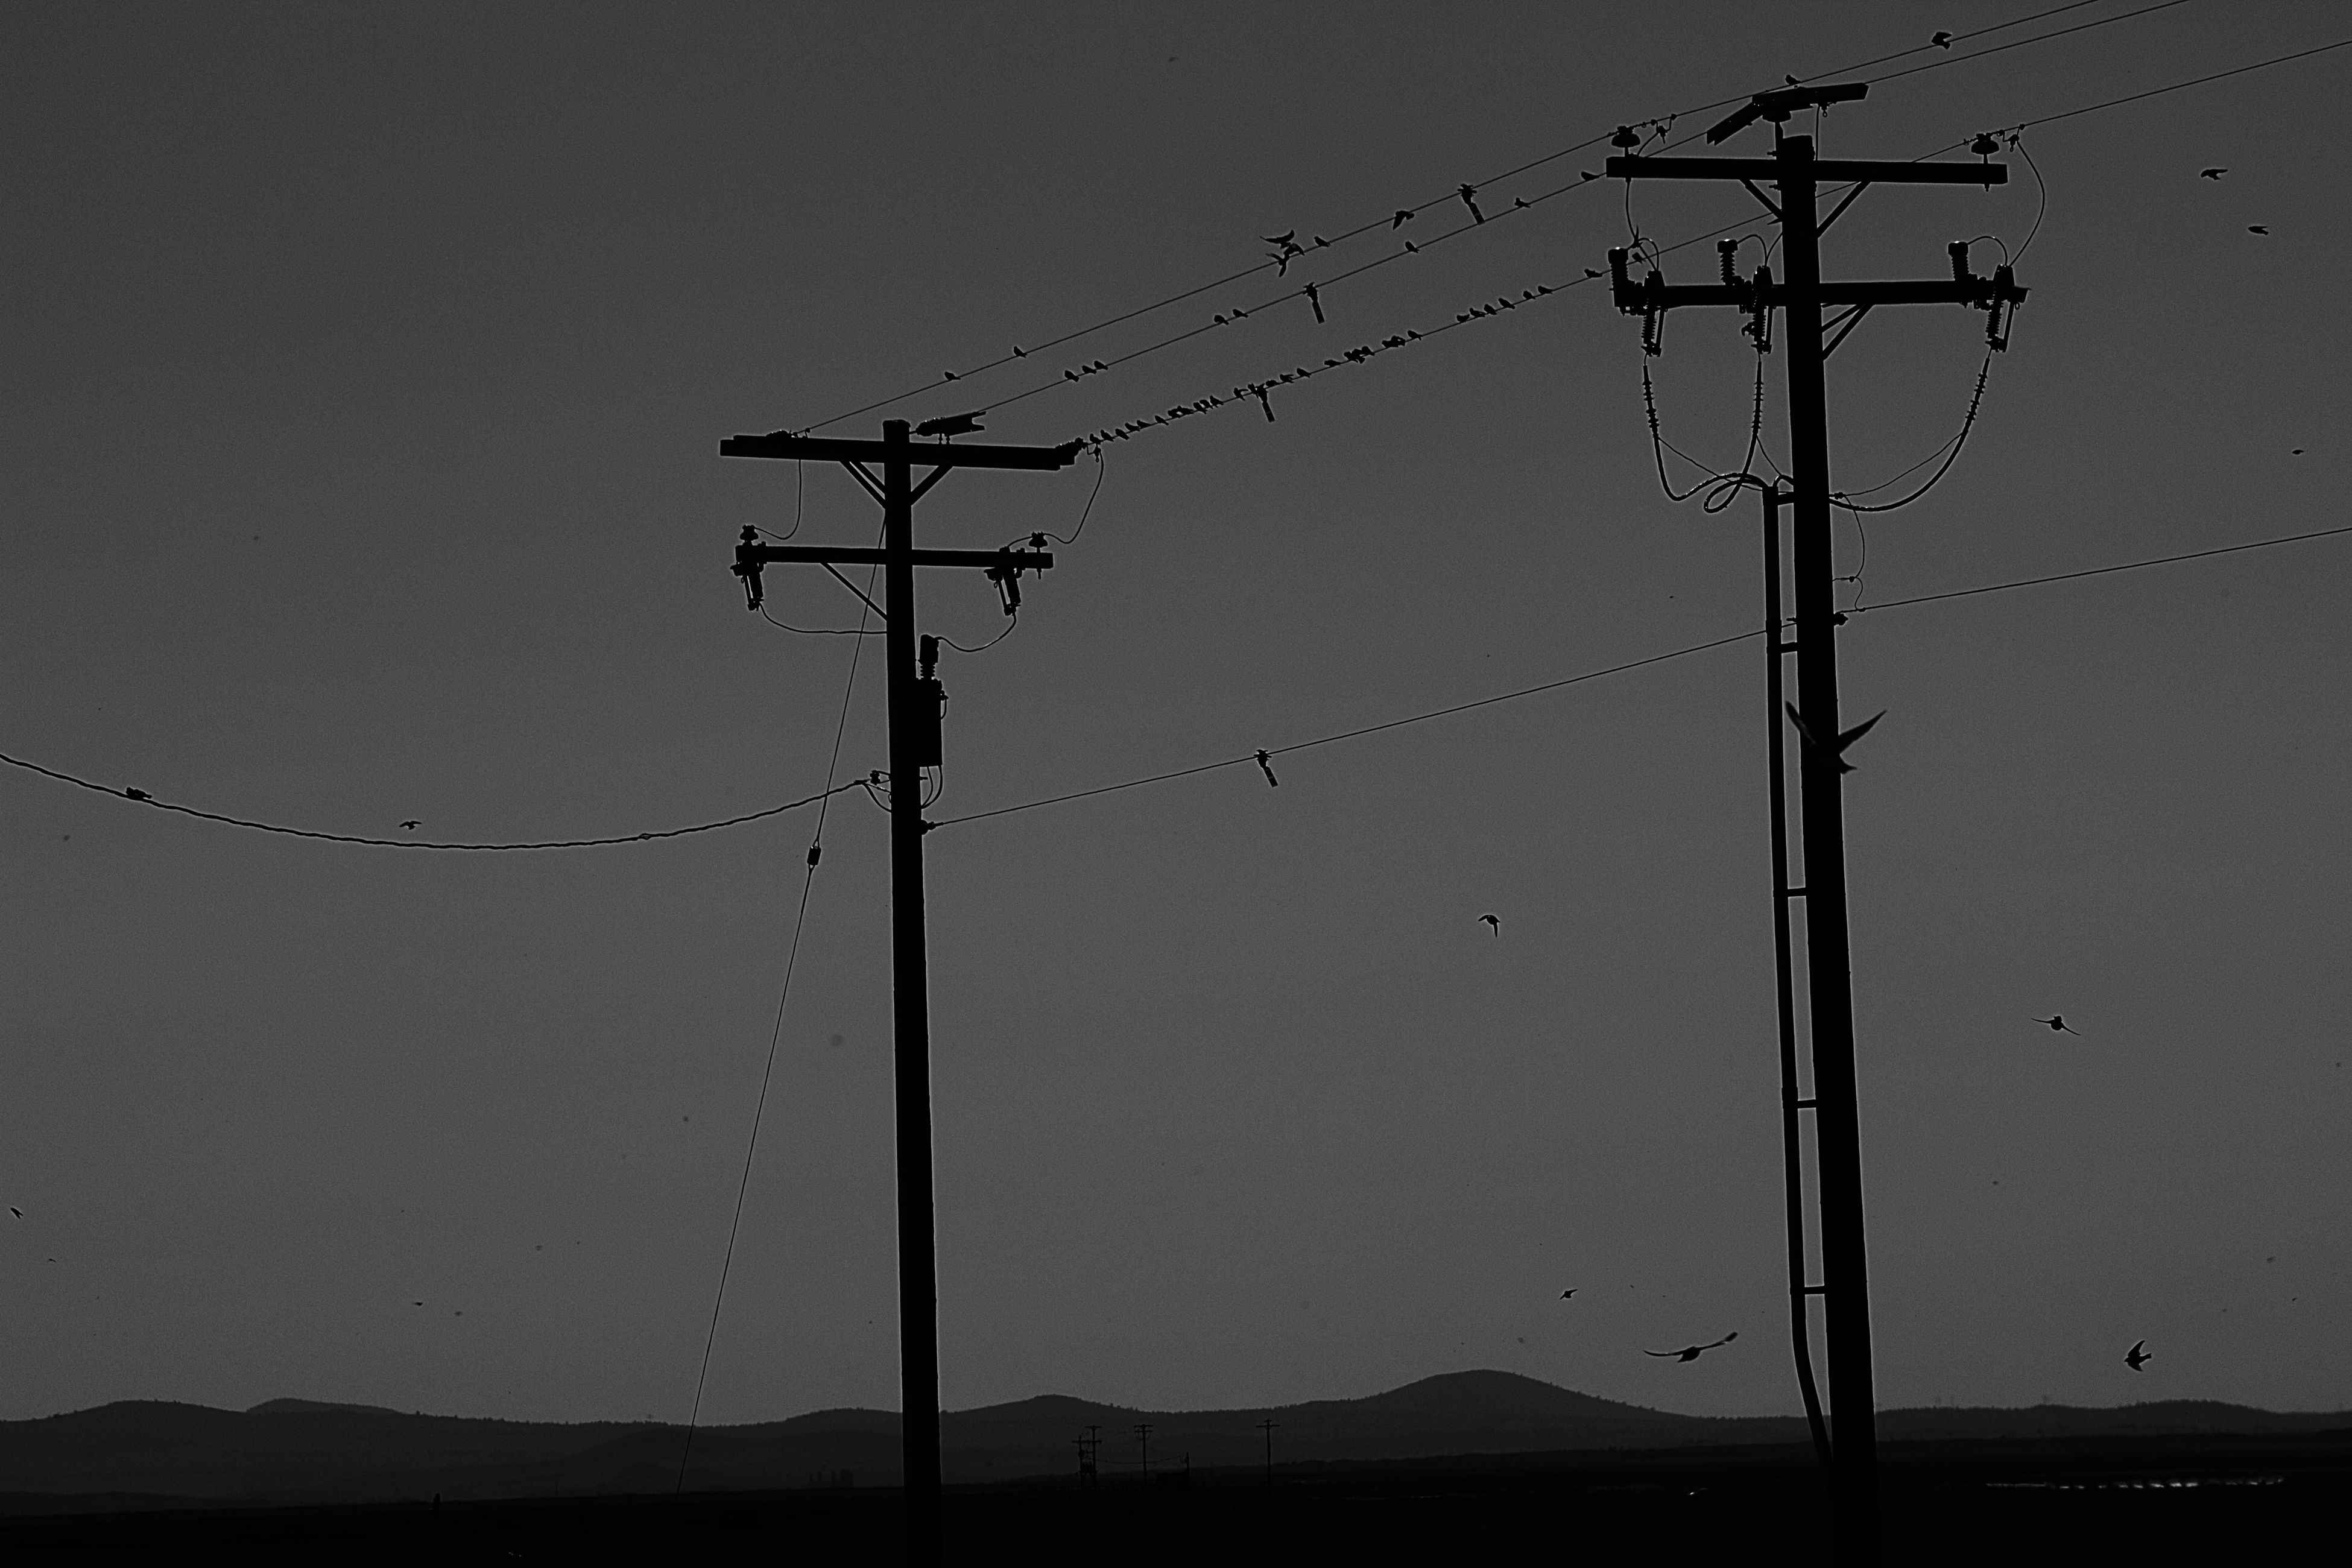 cable, connection, electricity, power line, technology, bird, power supply, low angle view, silhouette, electricity pylon, fuel and power generation, animals in the wild, outdoors, animal themes, telephone line, nature, no people, clear sky, day, perching, sky